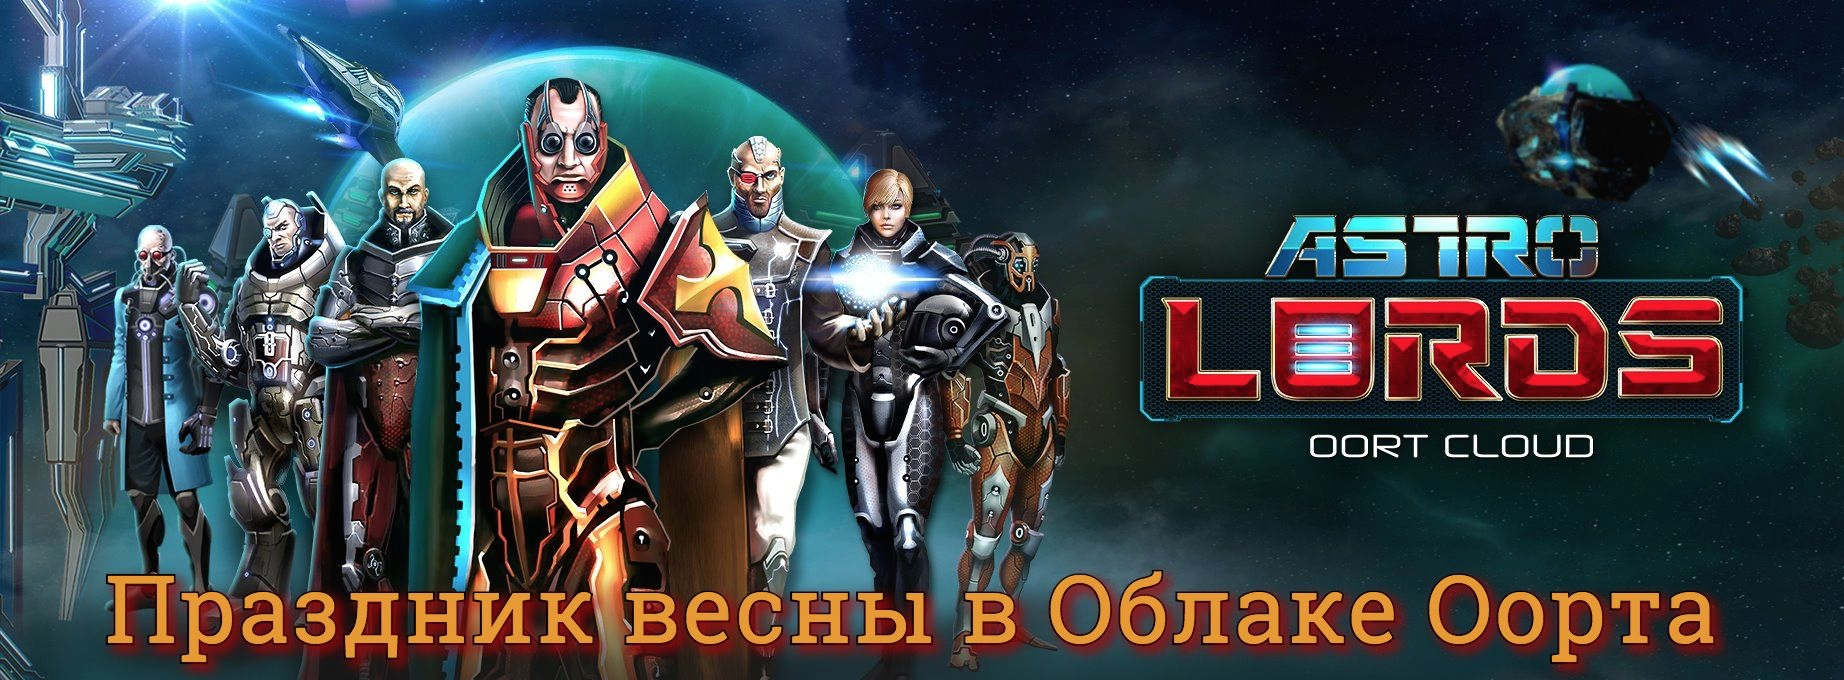 8 марта праздник весны женский день игра космос стратегия астролорды astro lords game mmo